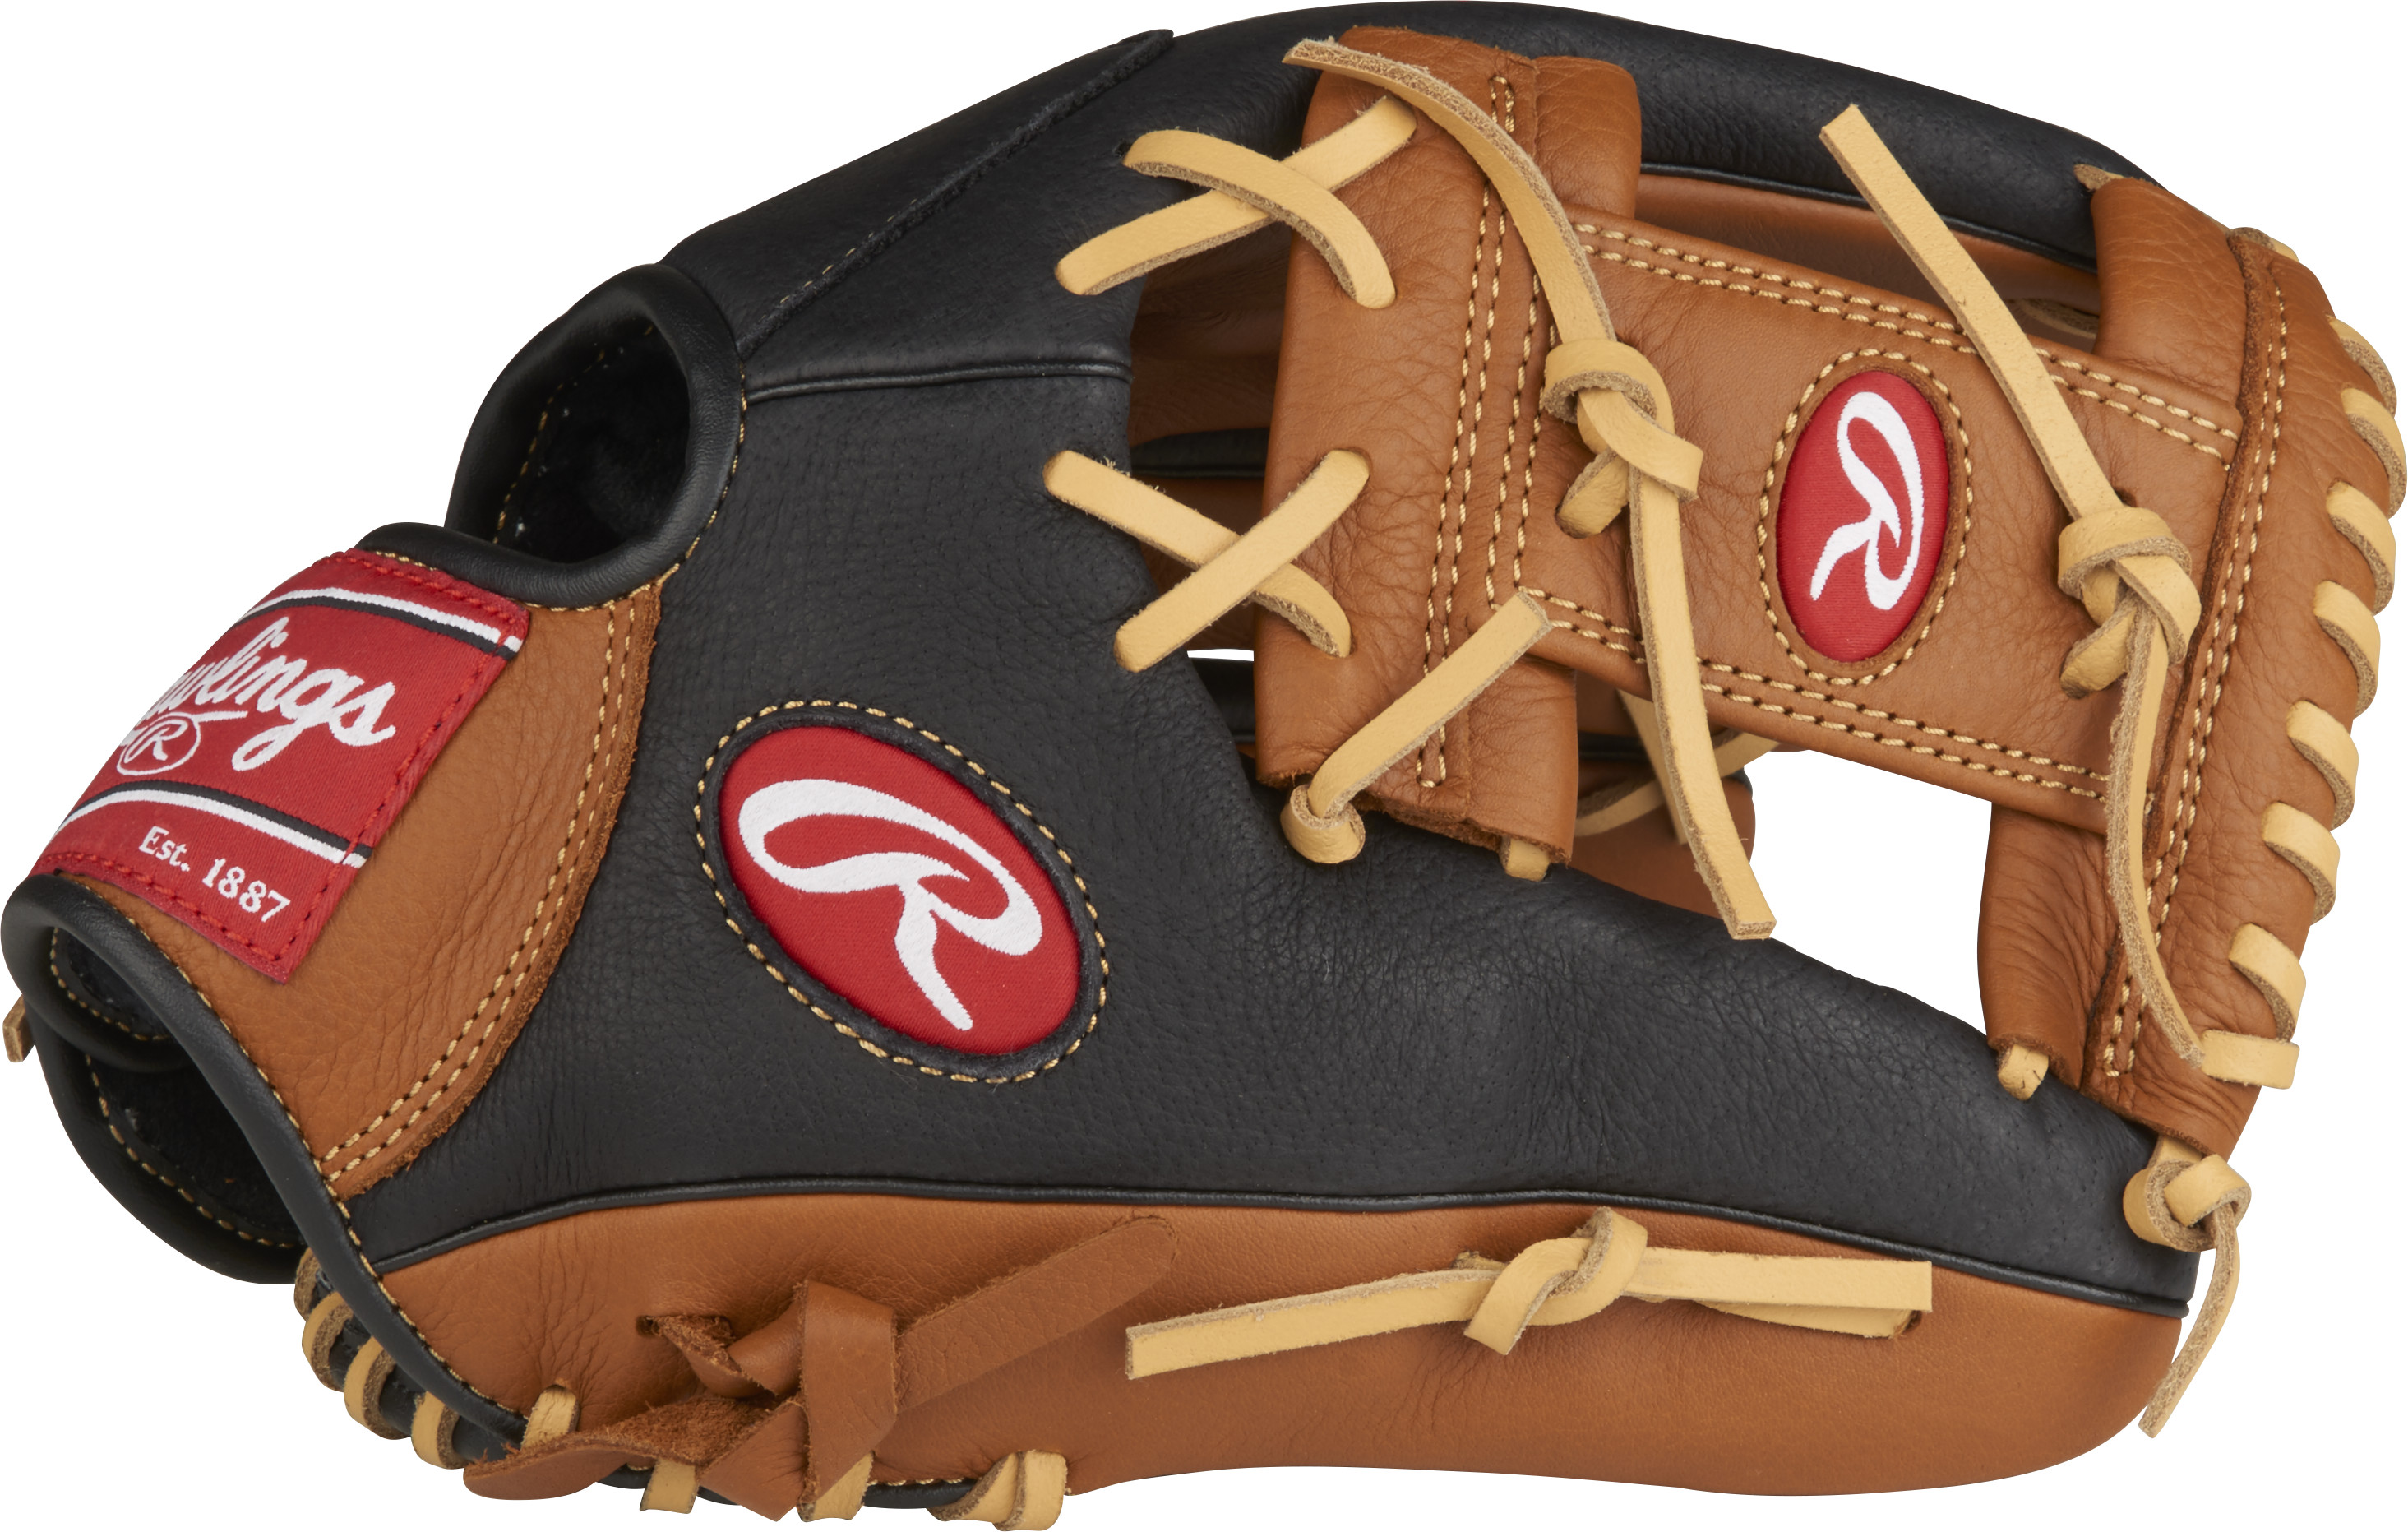 http://www.bestbatdeals.com/images/gloves/rawlings/P115GBI-3.jpg